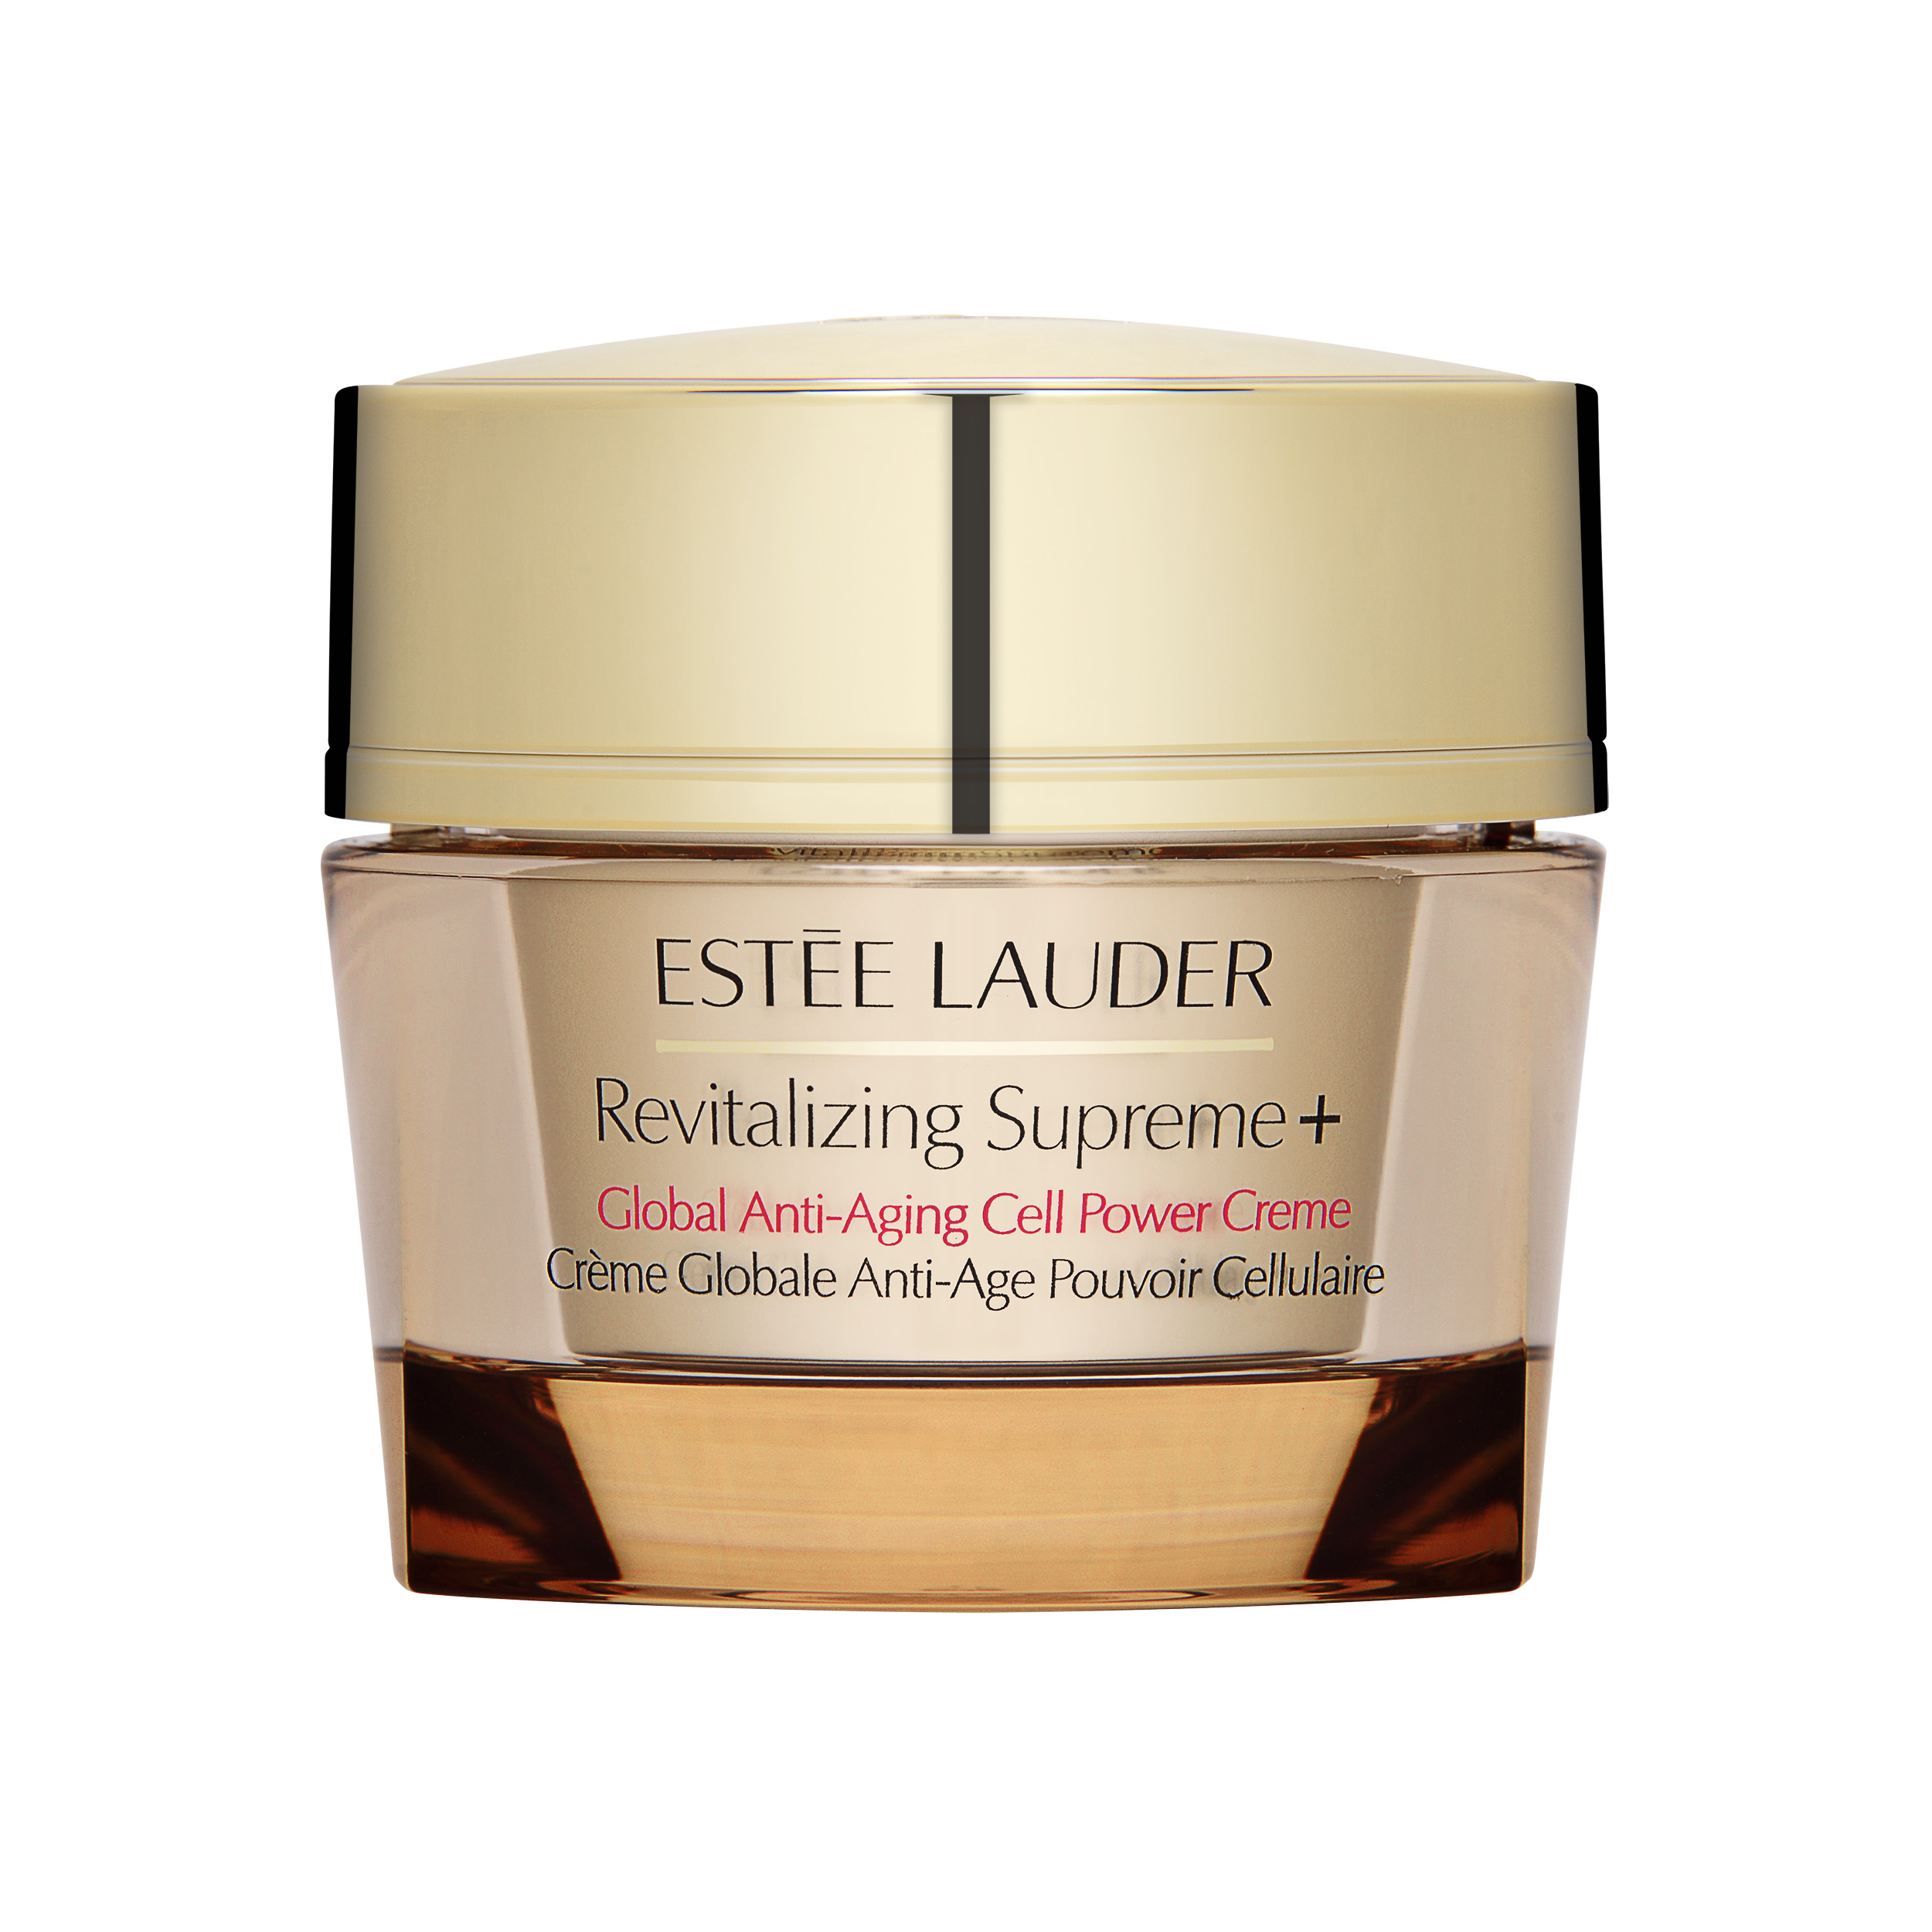 829a7e0f1b44 Details about Estee Lauder Revitalizing Supreme+ Global Anti-Aging Cell  Power Creme 50ml Cream